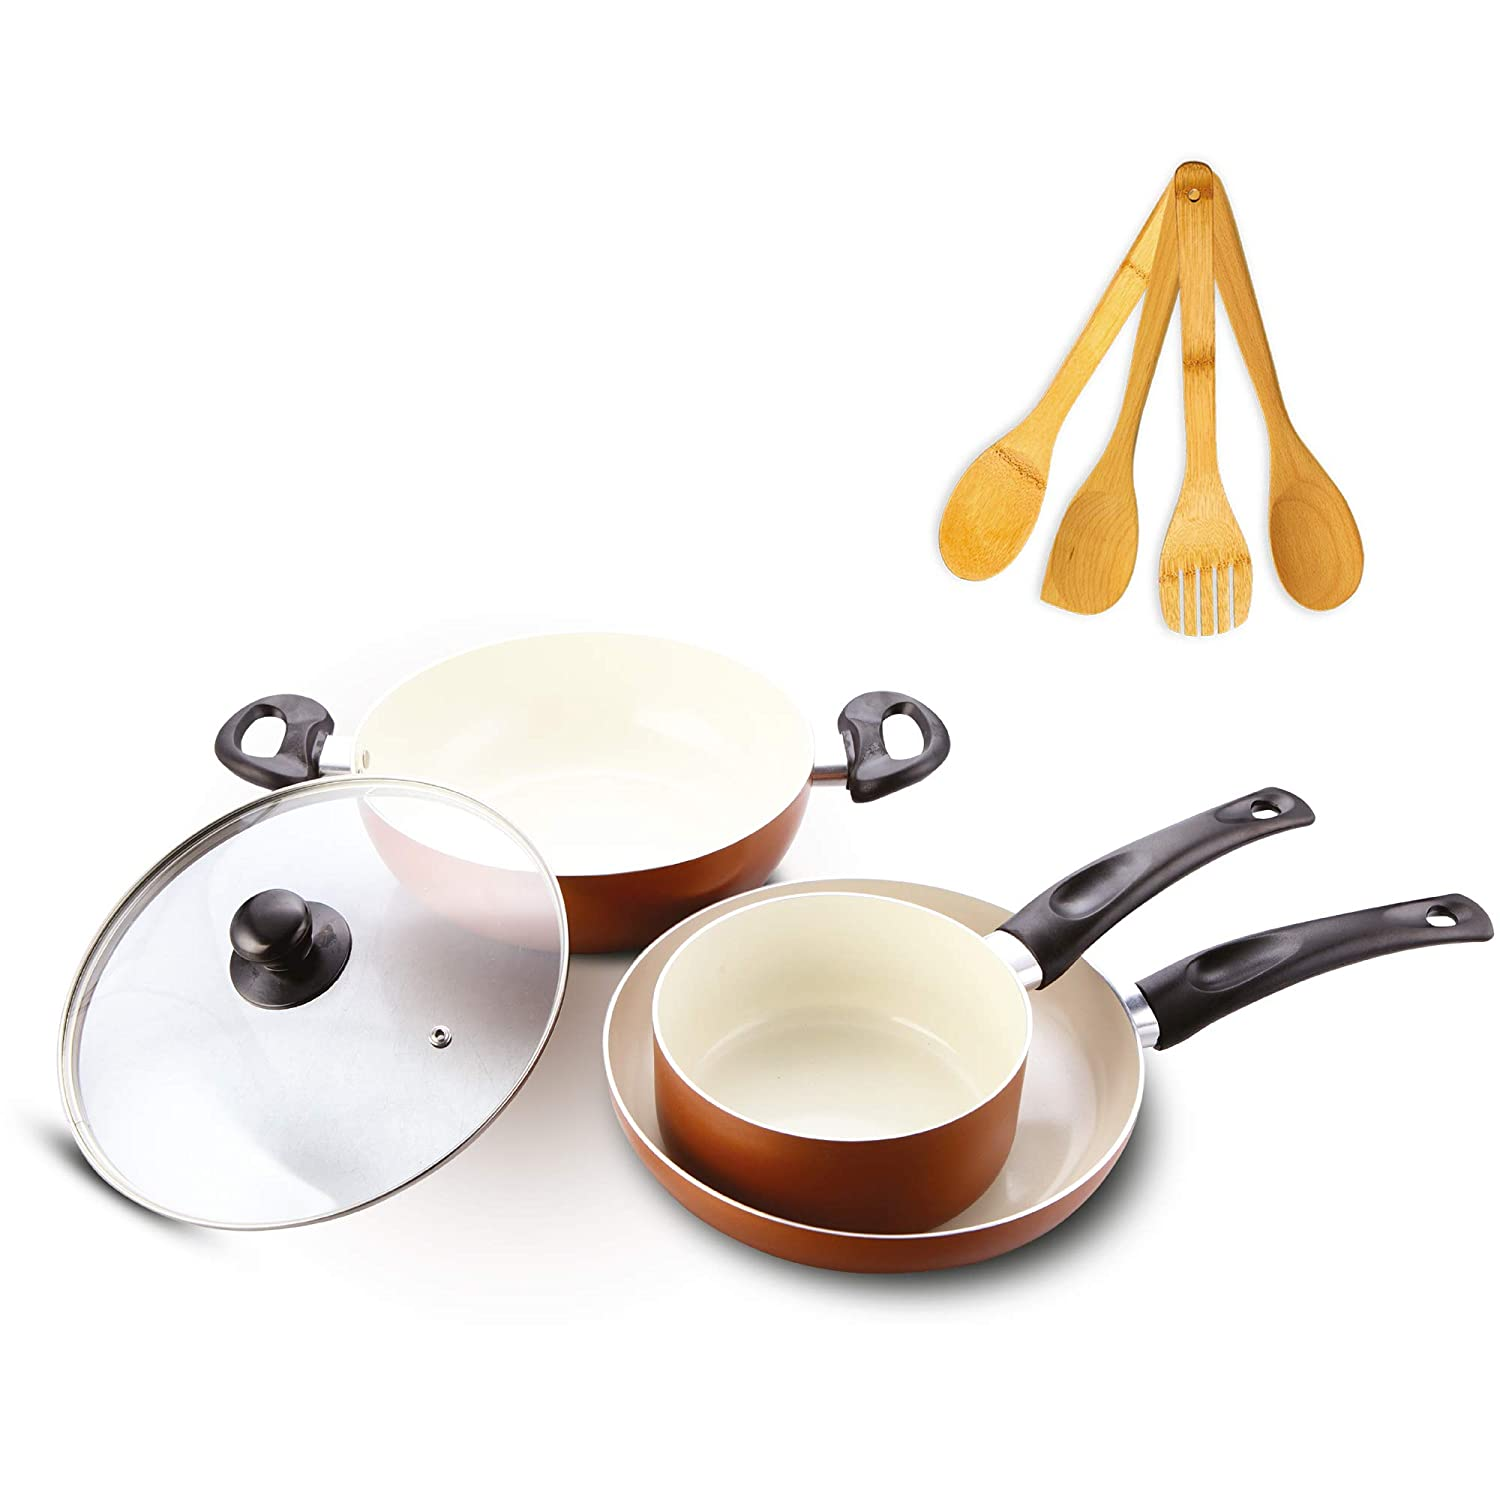 Impex Ceramic Coated Nonstick Aluminium Cookware Set